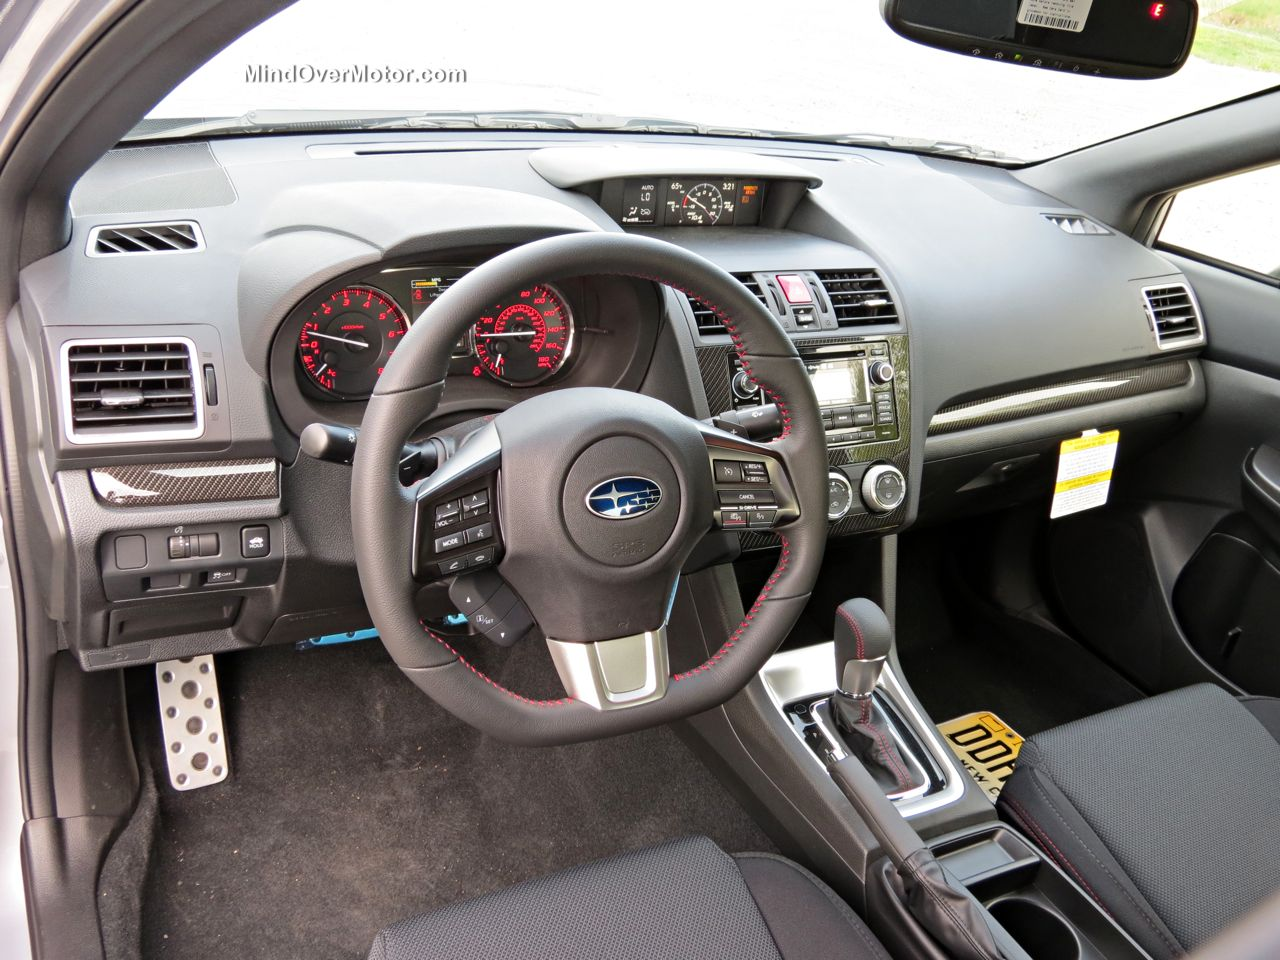 2015 subaru wrx cvt automatic reviewed 9 5 10 mind over motor. Black Bedroom Furniture Sets. Home Design Ideas